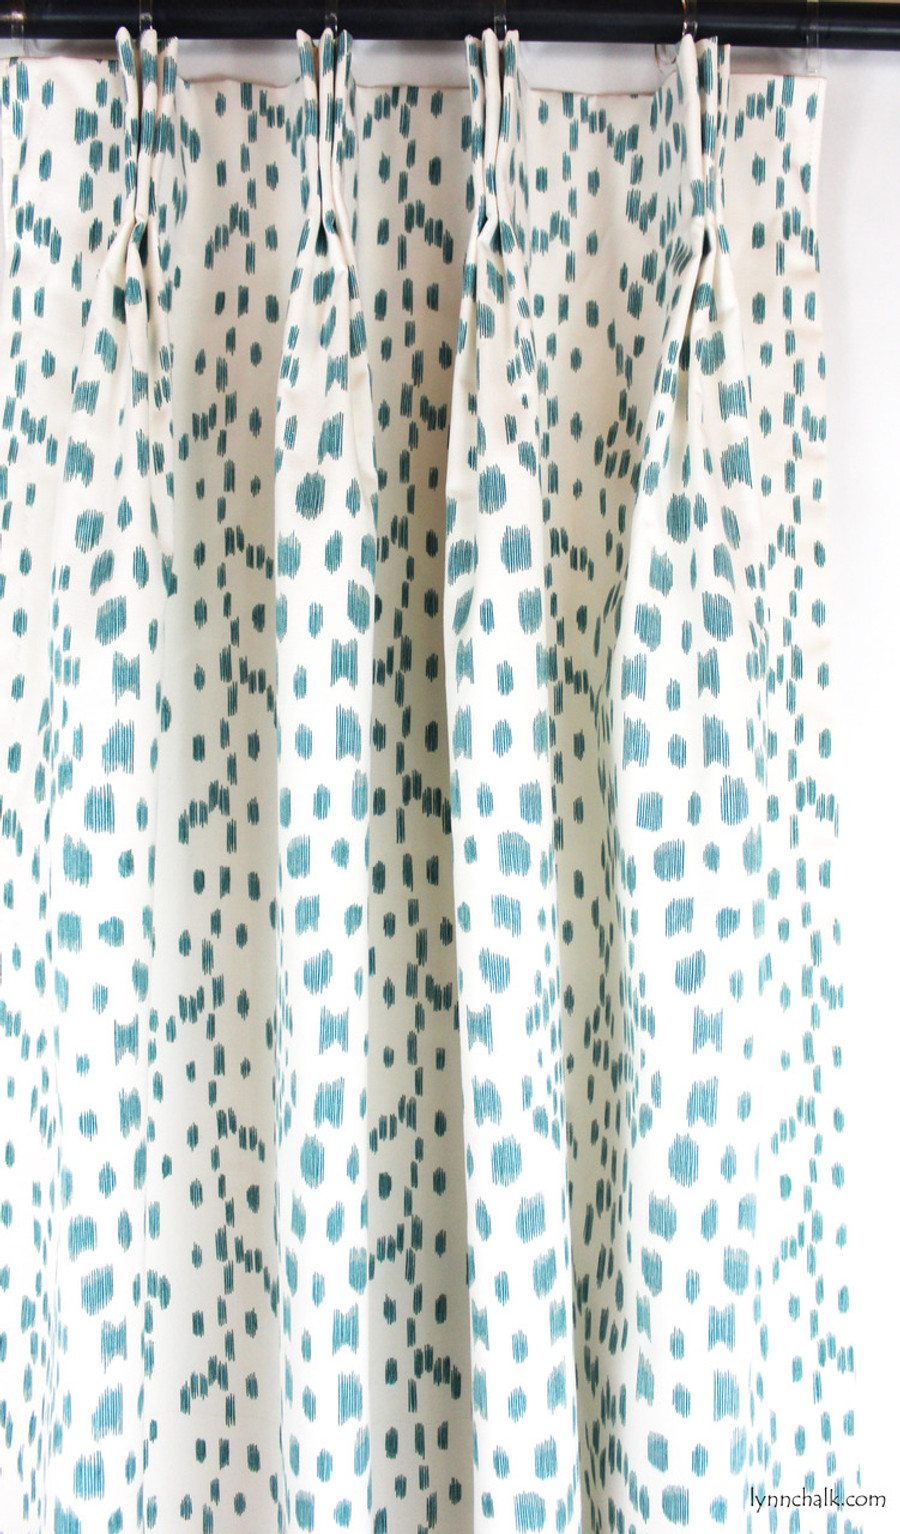 Custom Drapes by Lynn Chalk in Les Touches in Aqua